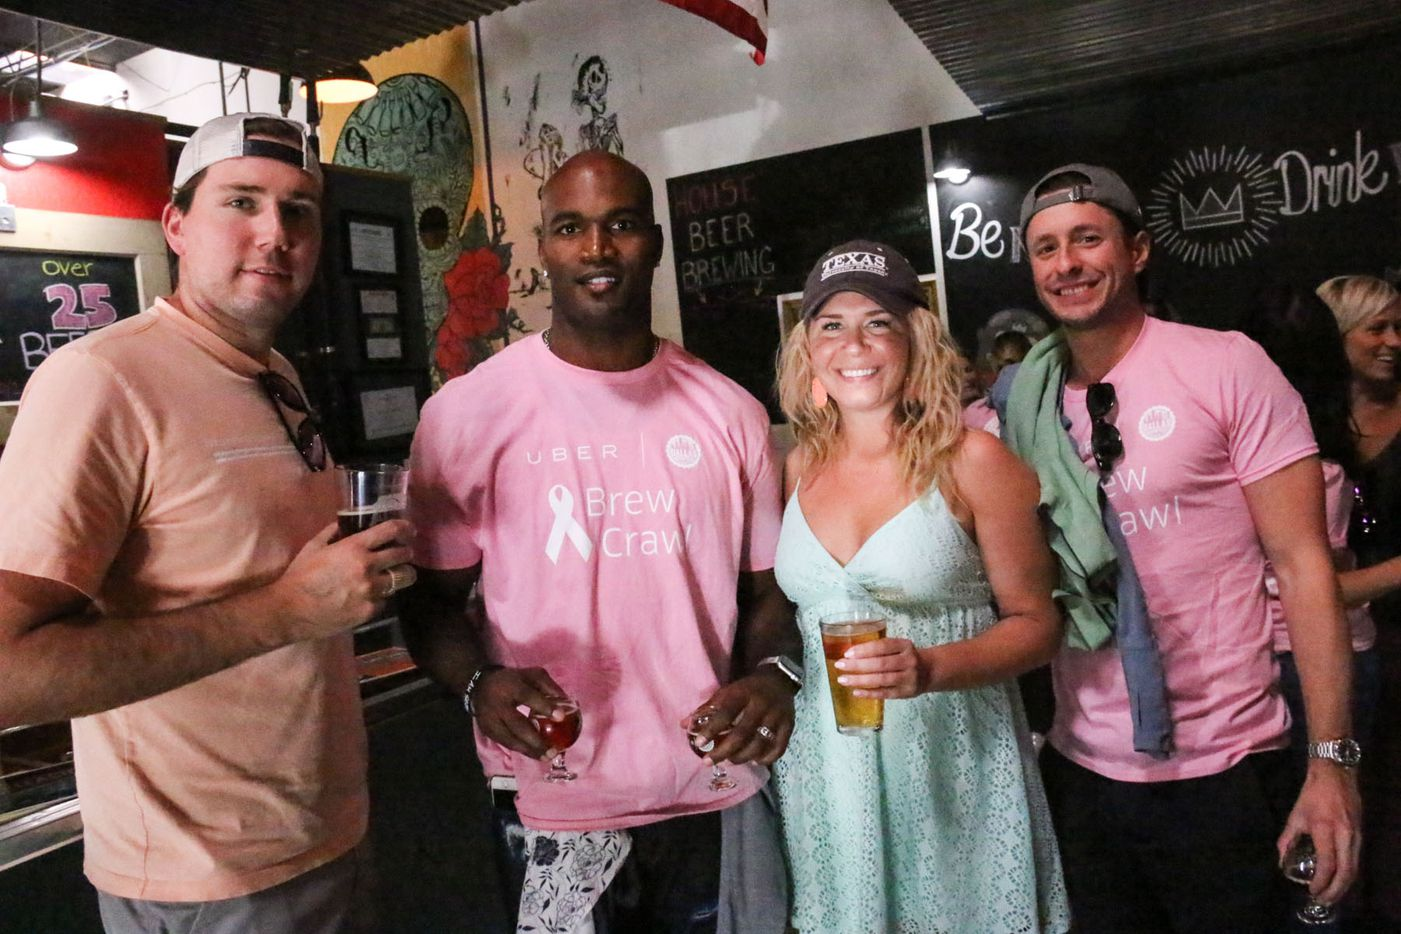 Bradie James (second from left) posed with brew crawlers  at Noble Rey Brewing Co. during the inaugural Brew Crawl for Breast Cancer on Saturday at Noble Rey Brewing Co. in Dallas. The event benefited Bradie James' Foundation 56 breast cancer nonprofit.